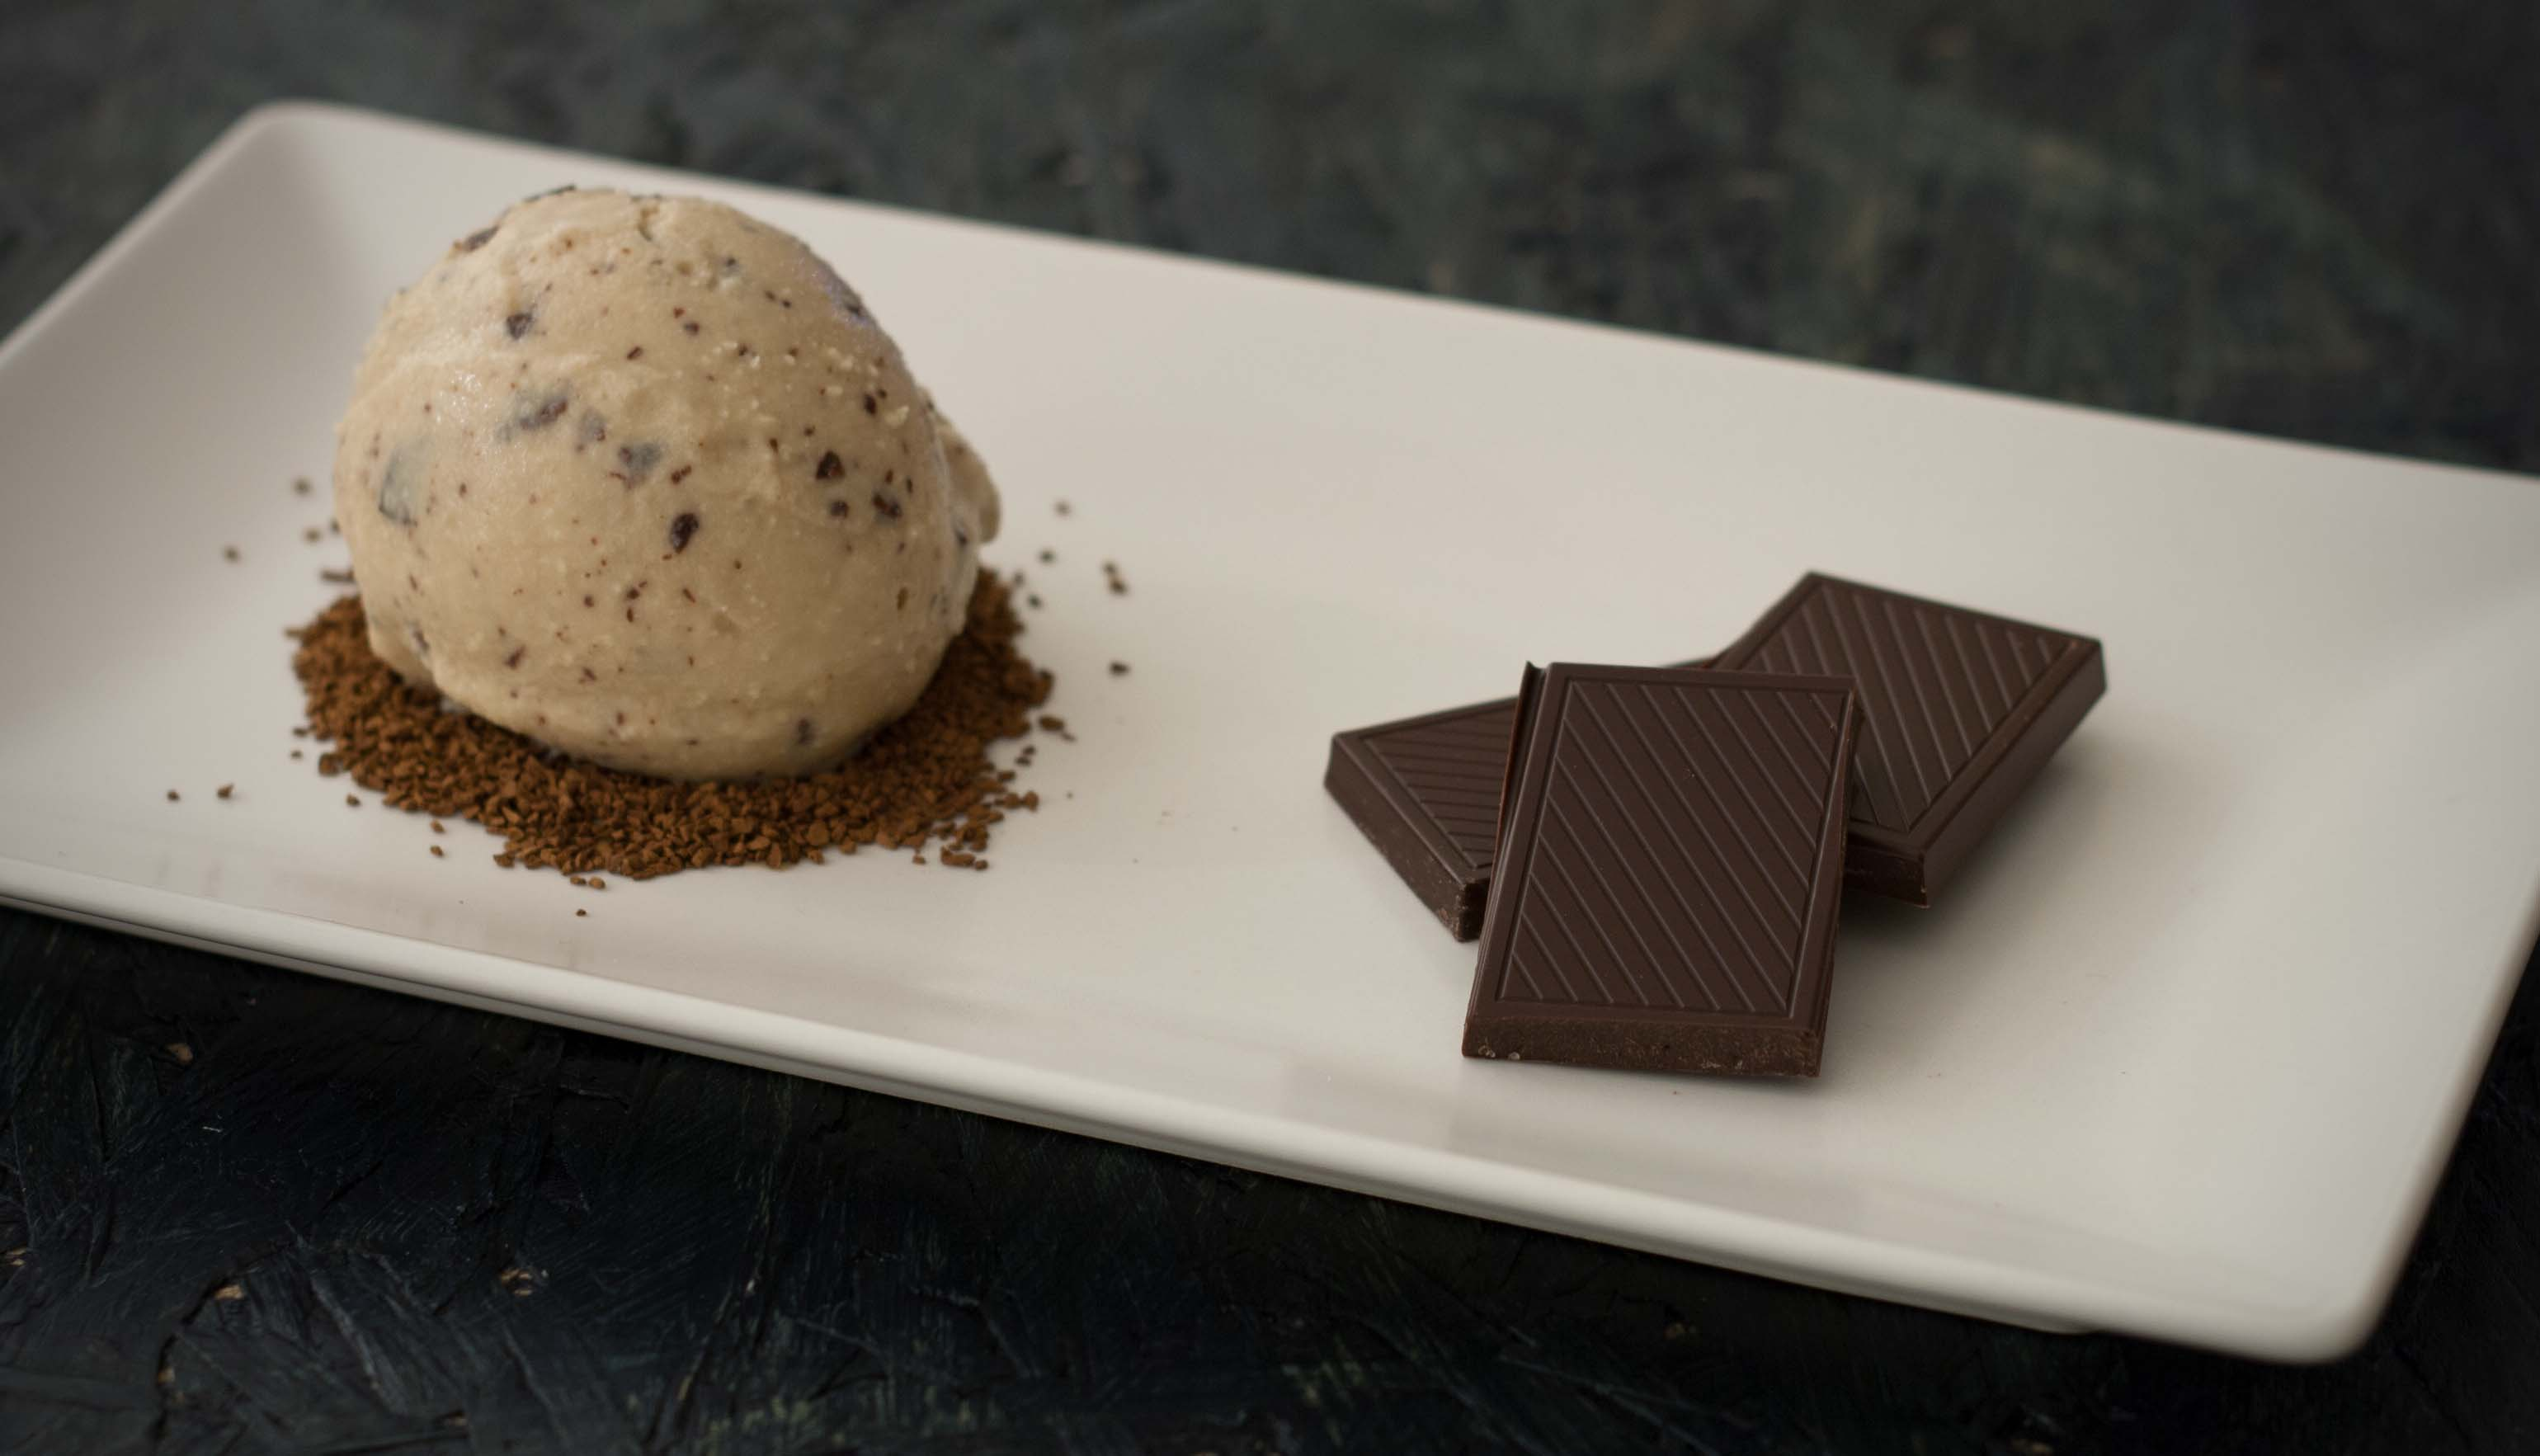 Recipe for Homemade Coffee Ice Cream with Chocolate Pieces